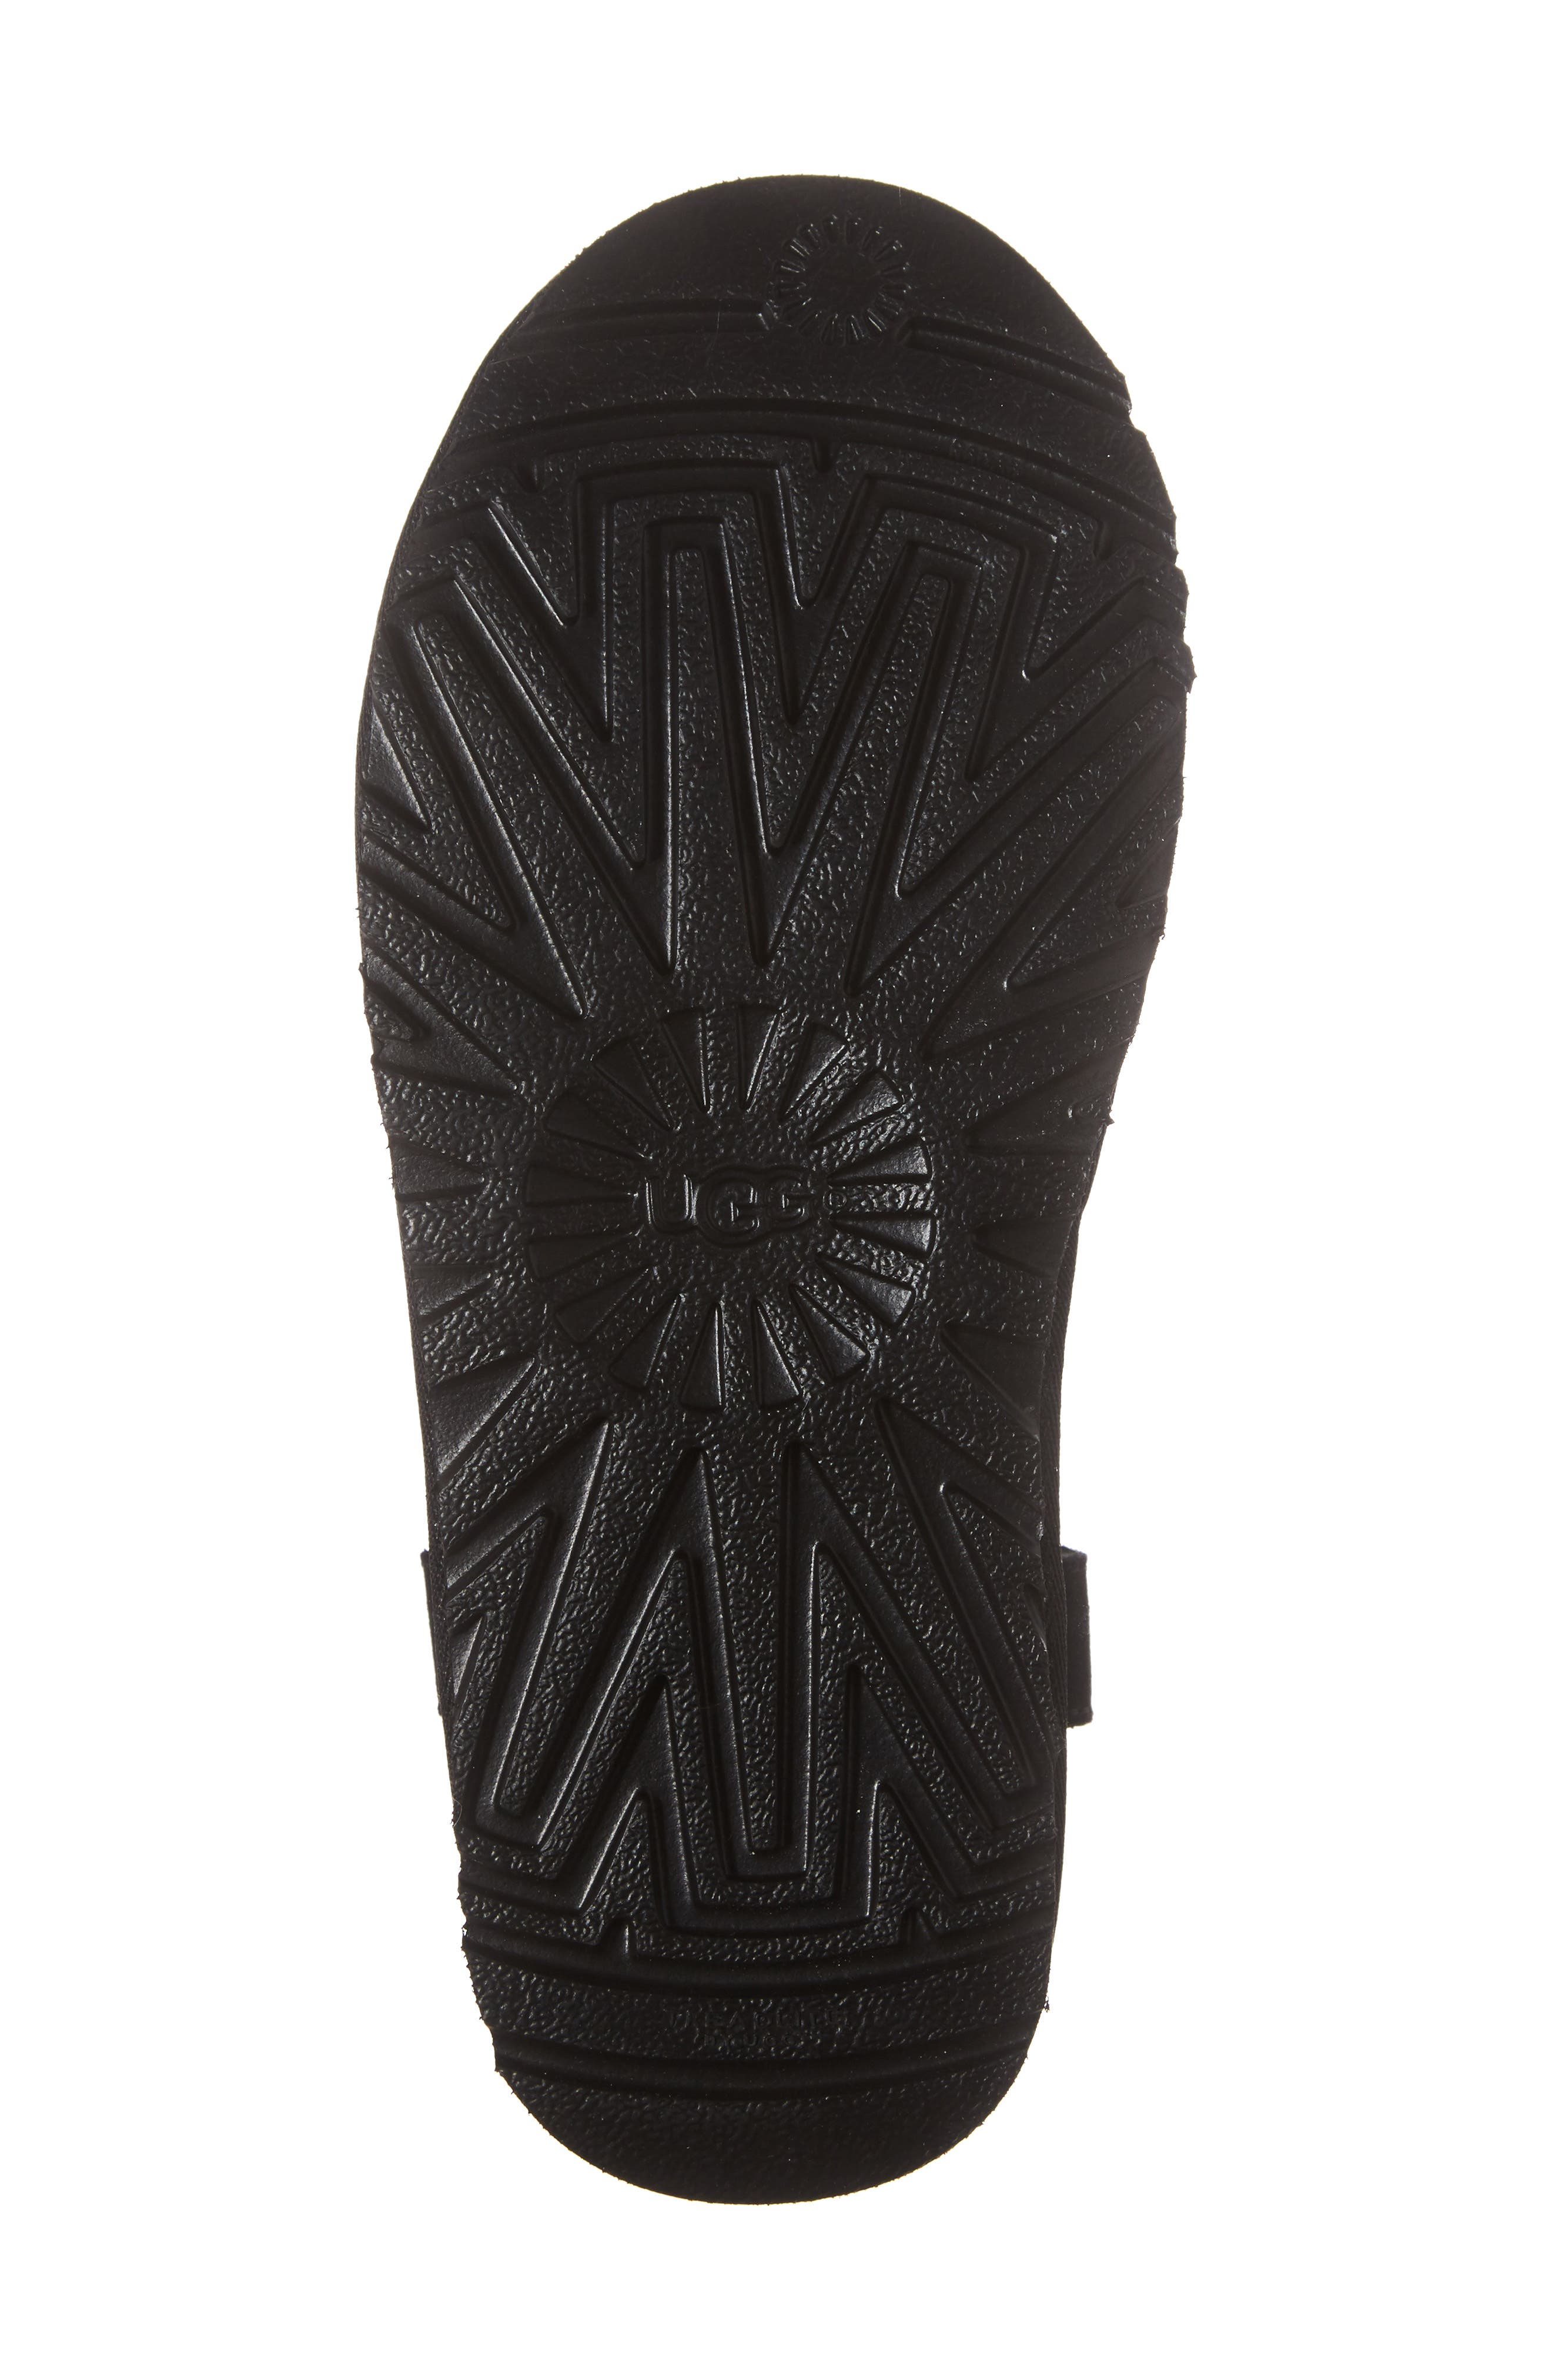 Saela Knit Cuff Boot,                             Alternate thumbnail 6, color,                             001